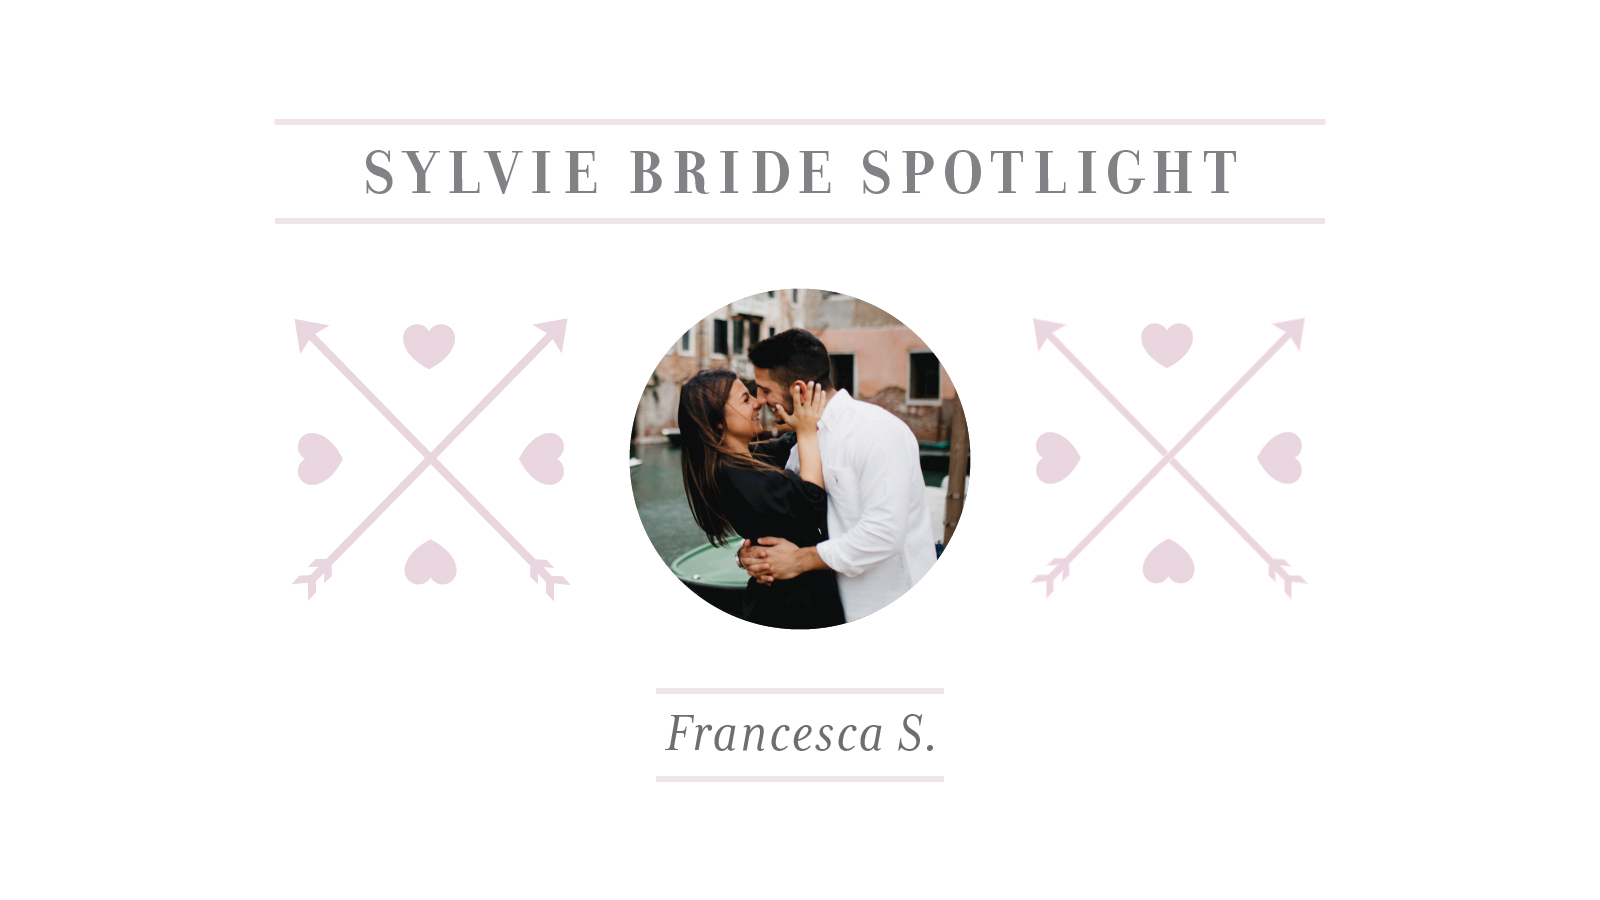 Sylvie Bride Spotlight: Francesca S